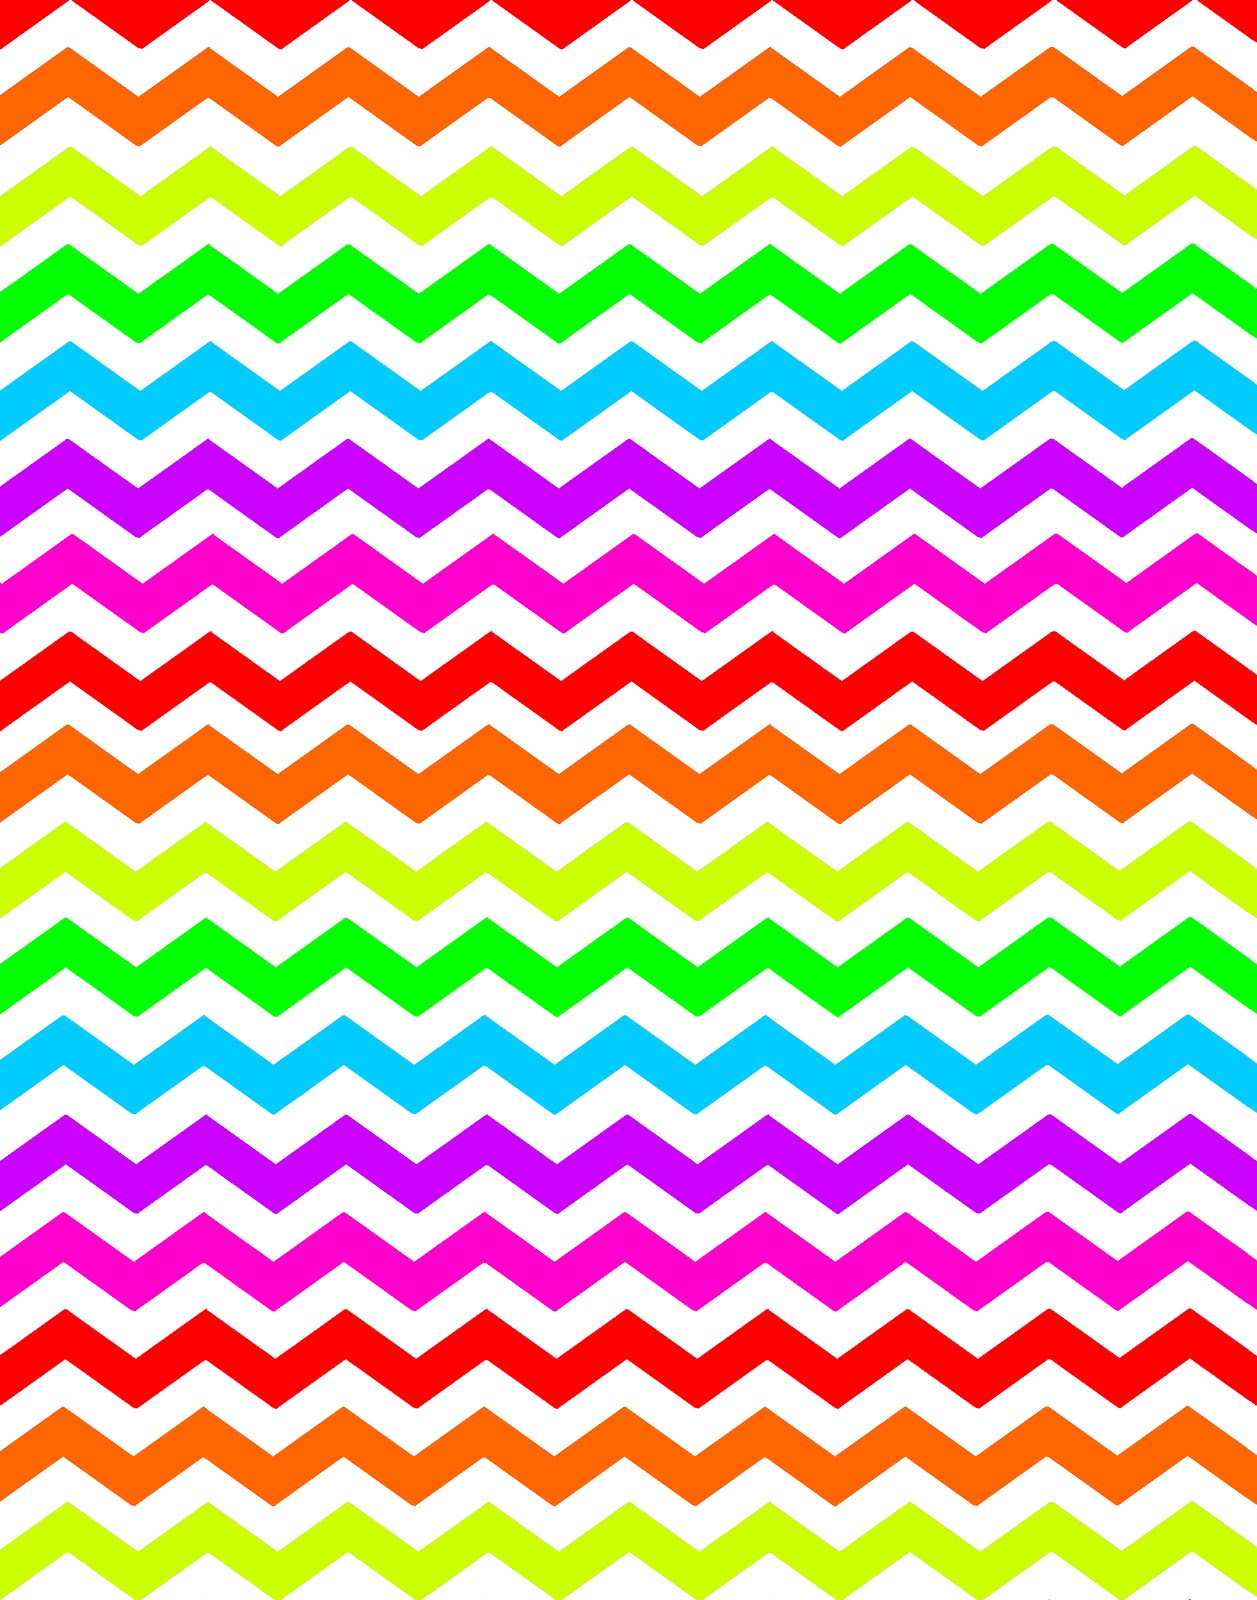 Awsome Backgrounds Wallpapers Neon Colored Backgrounds 1257x1600